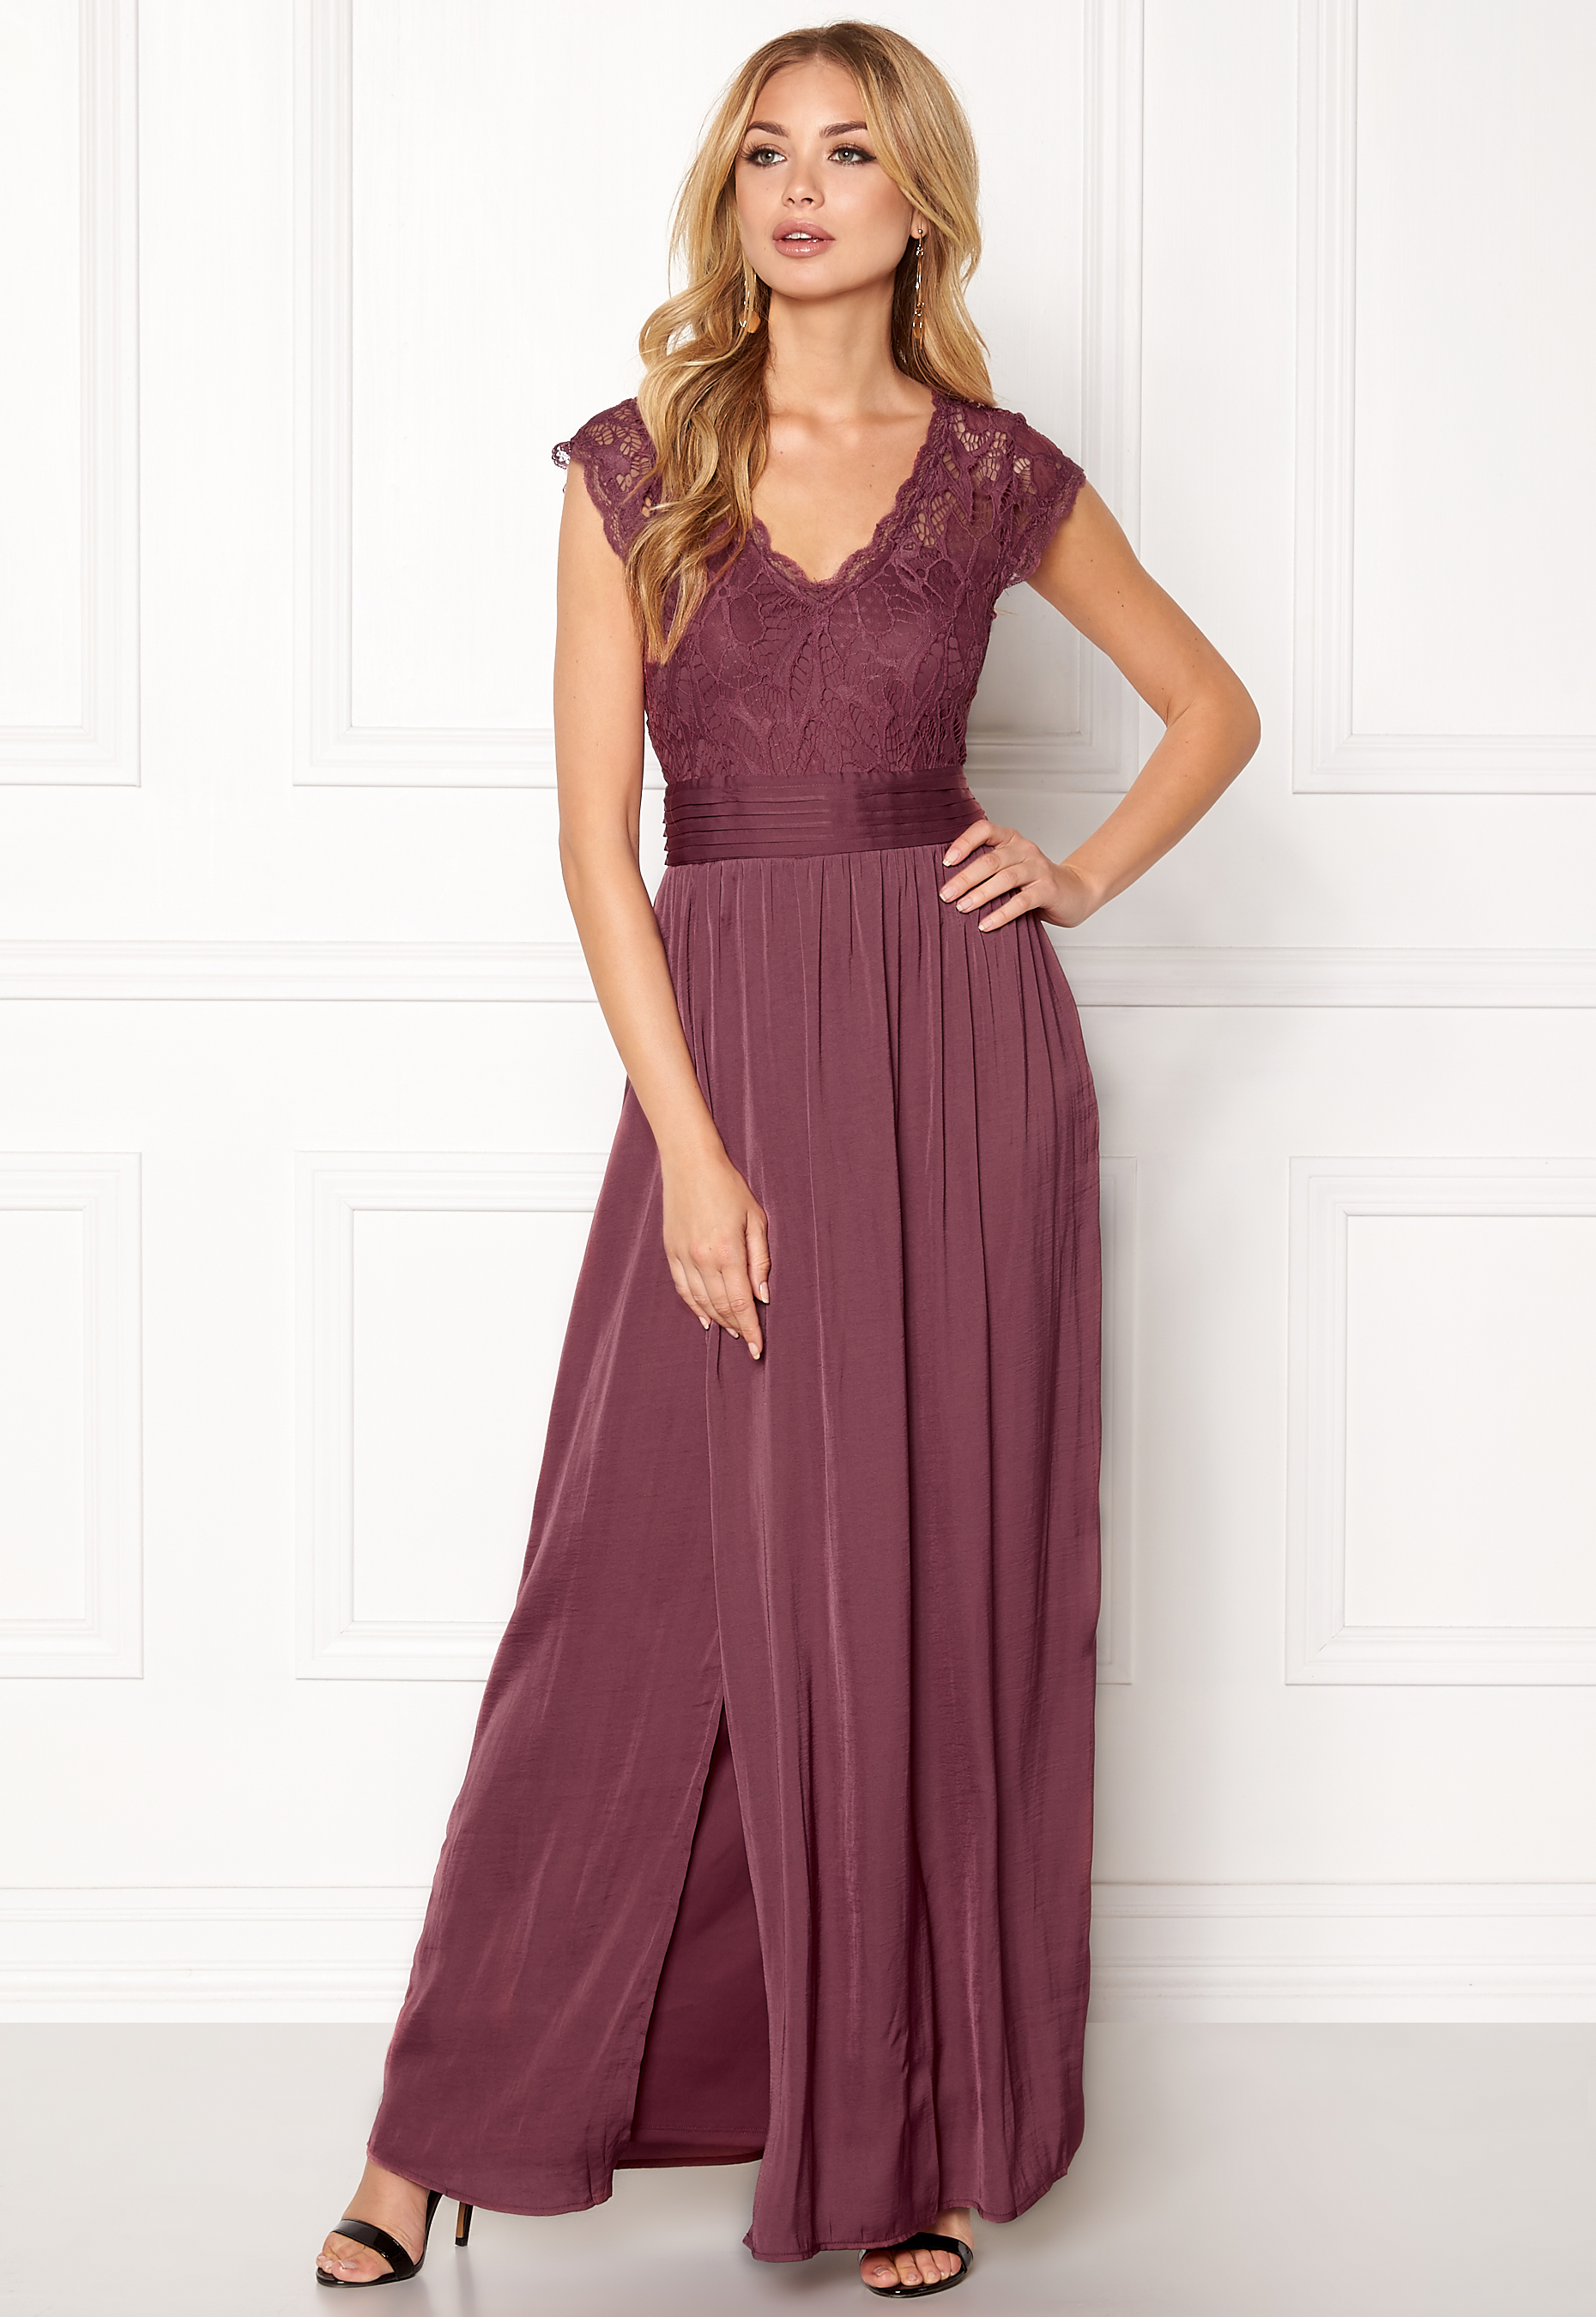 VILA Ponny Maxi Dress Renaissance Rose - Bubbleroom 598a8f0a41cf5